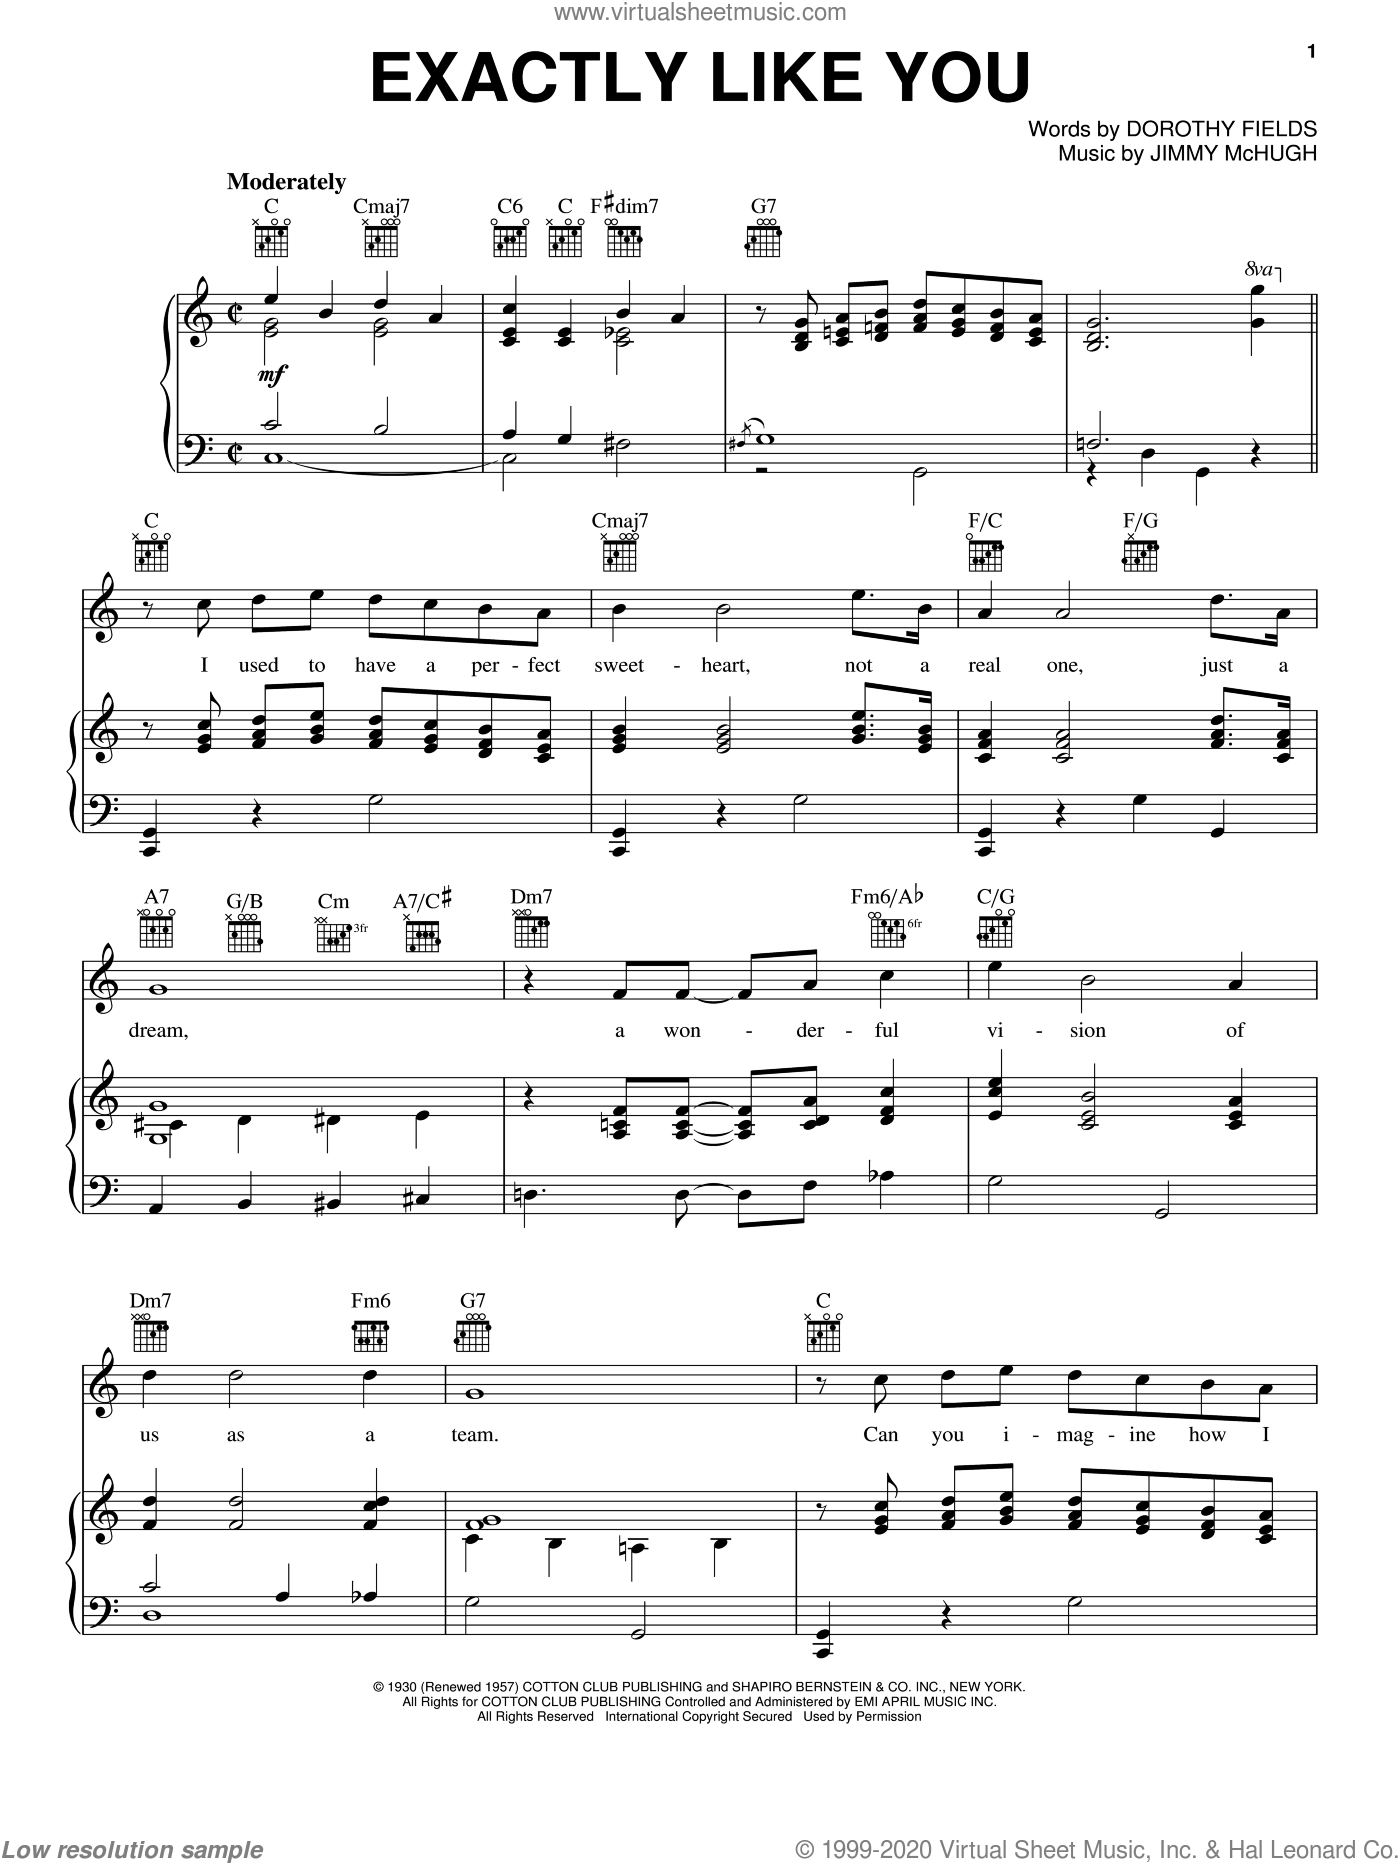 Exactly Like You sheet music for voice, piano or guitar by Dorothy Fields and Jimmy McHugh, intermediate. Score Image Preview.